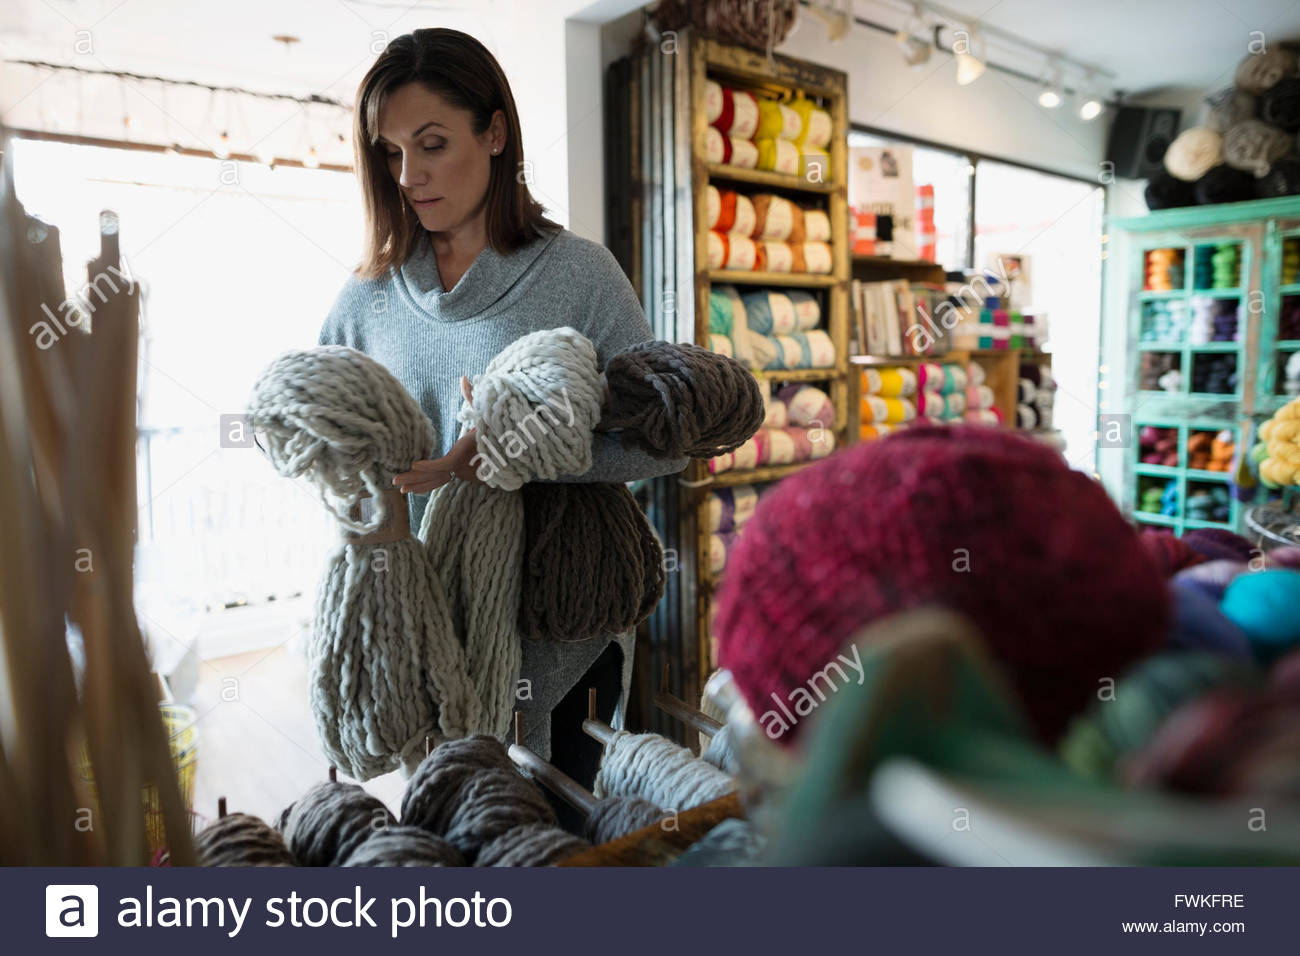 Yarn store owner arranging knit blankets - Stock Image